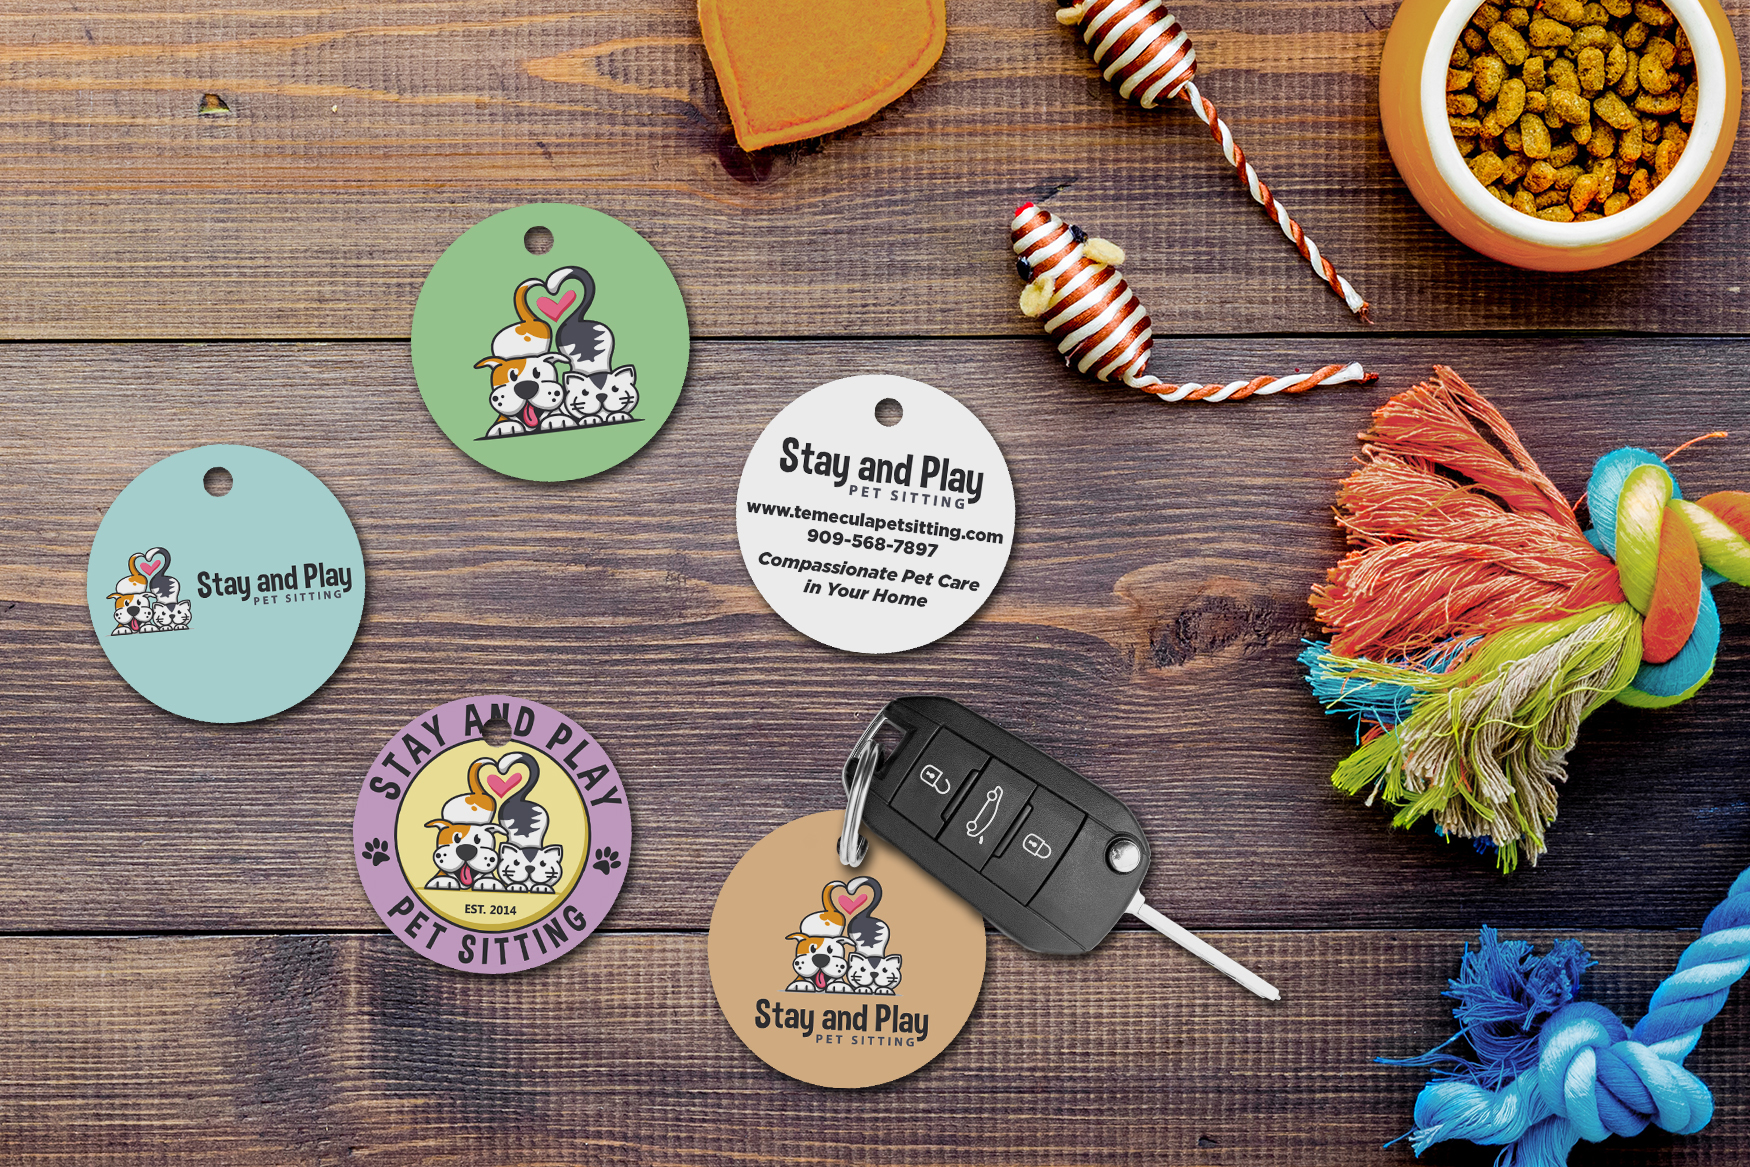 Promotional key tags for a pet sitting business